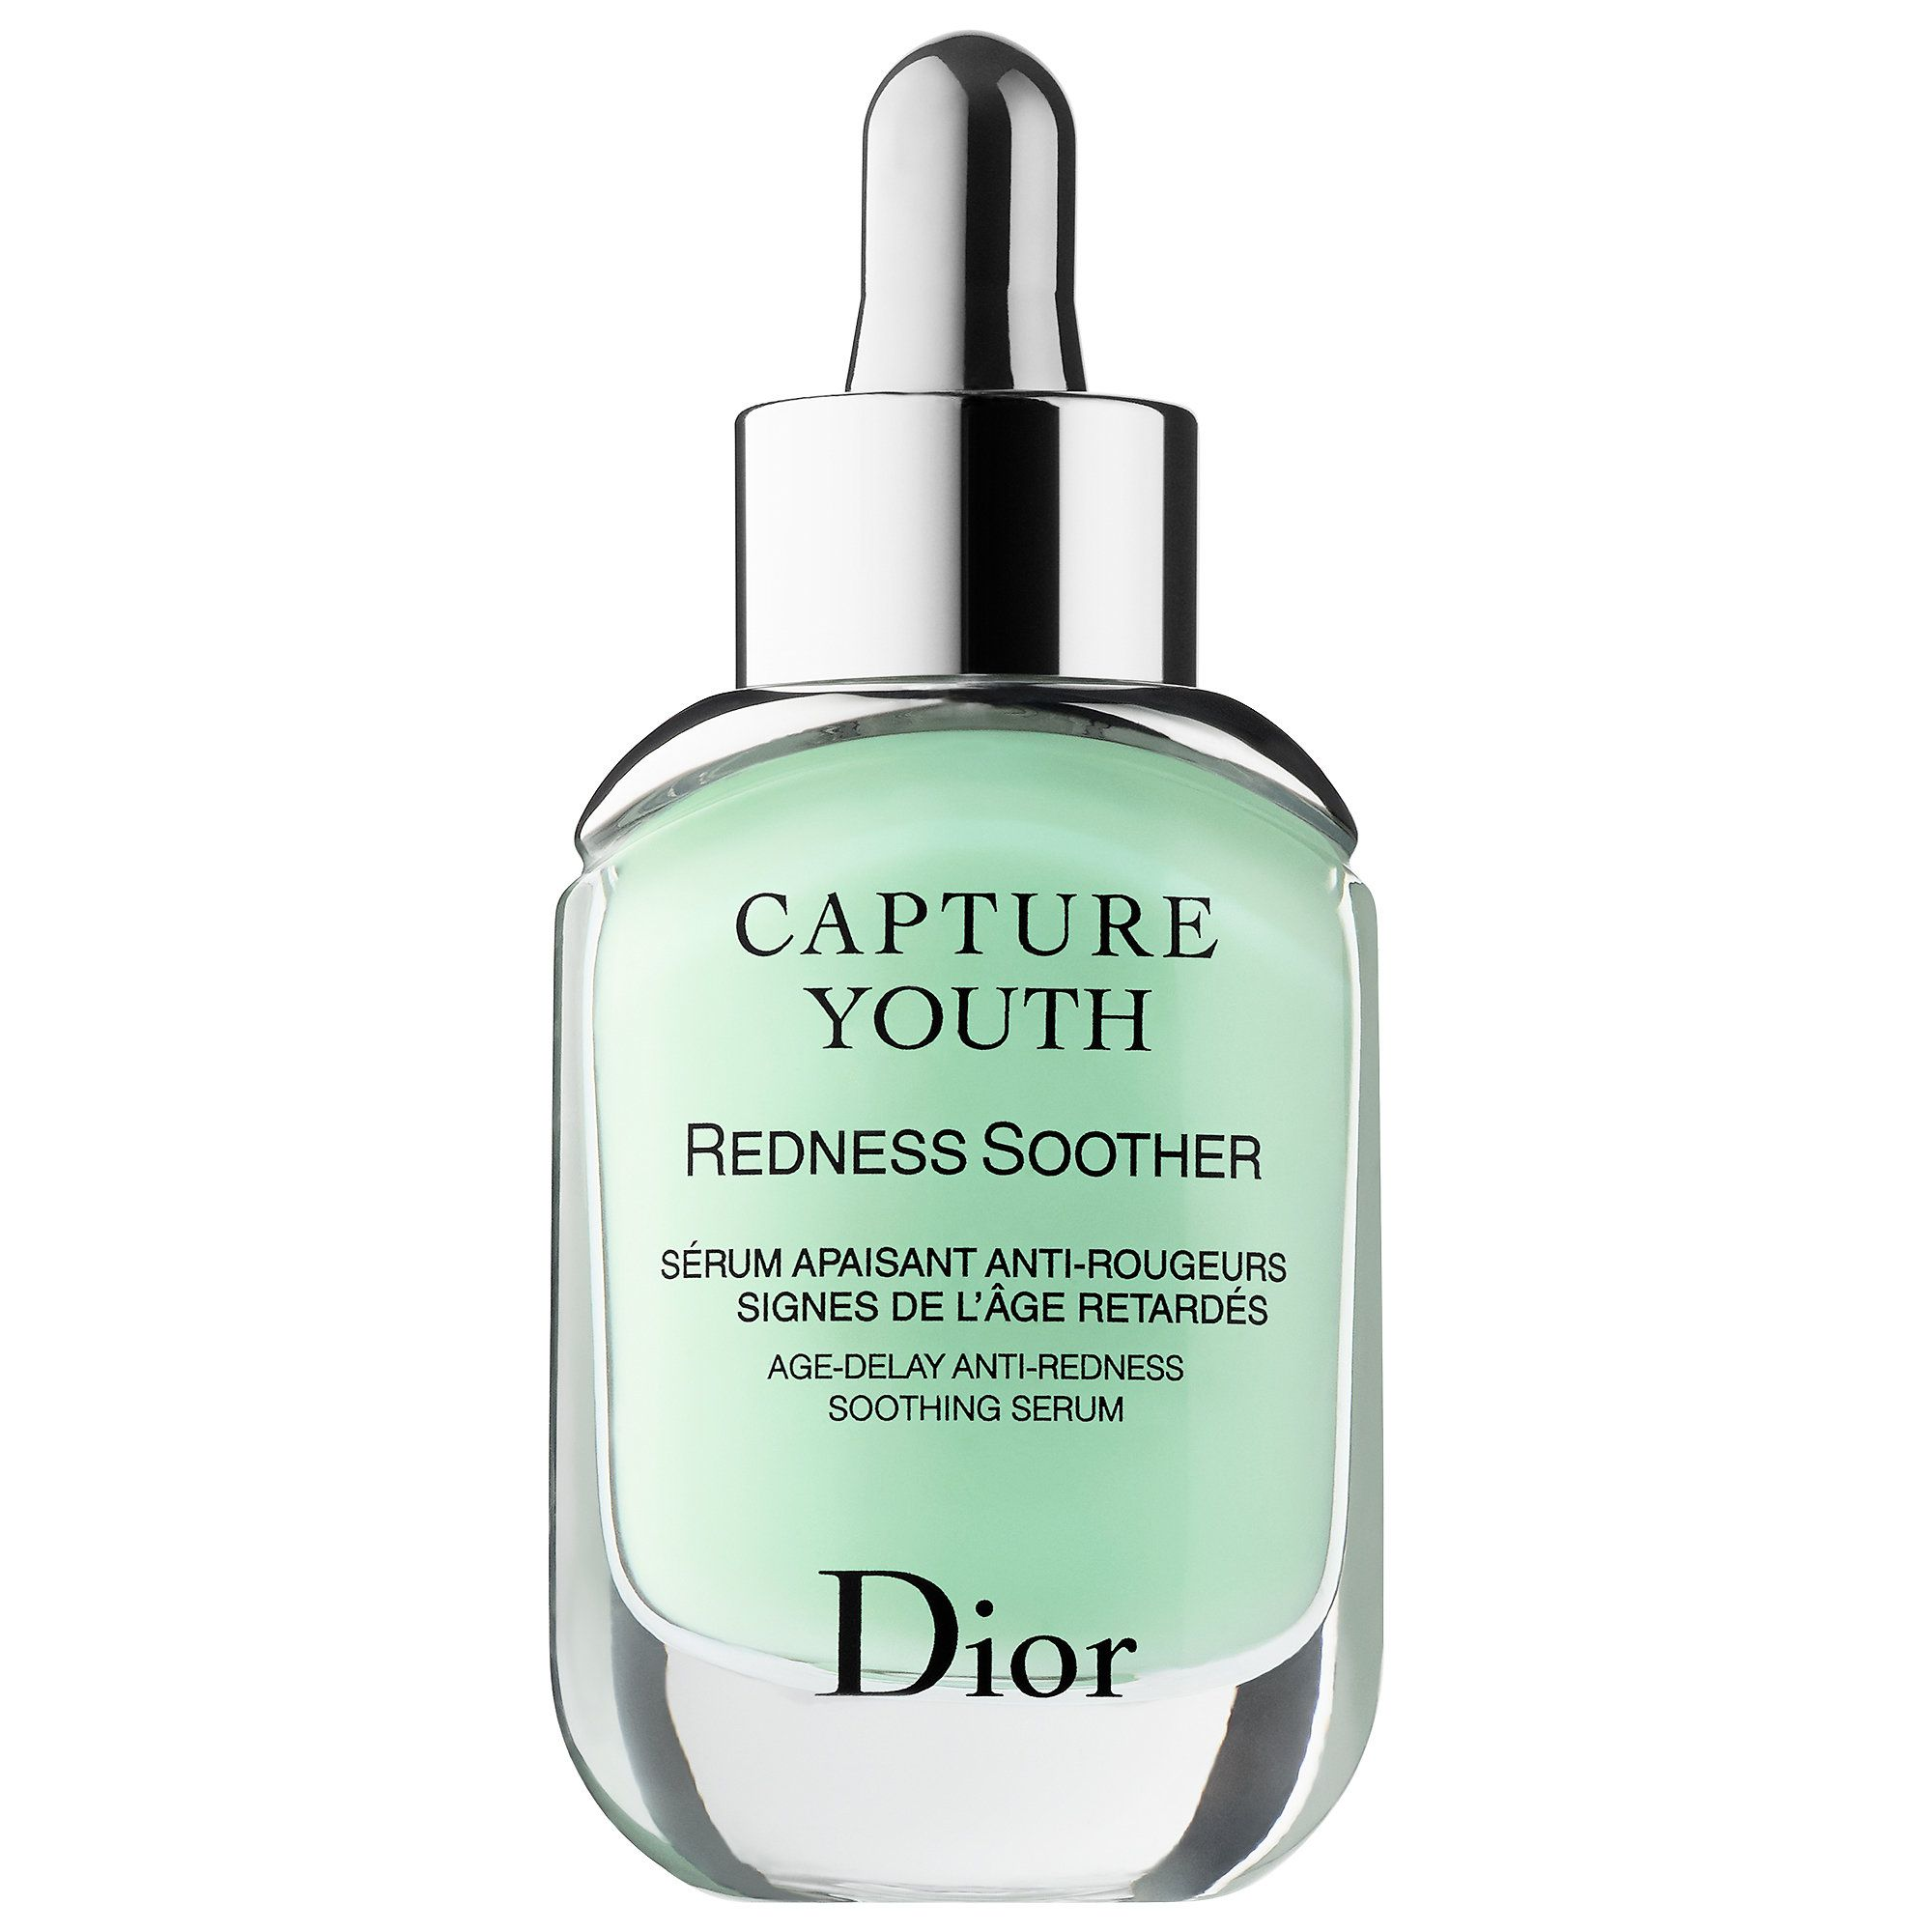 Sérum calmante antirrojeces Redness Shoother de Dior